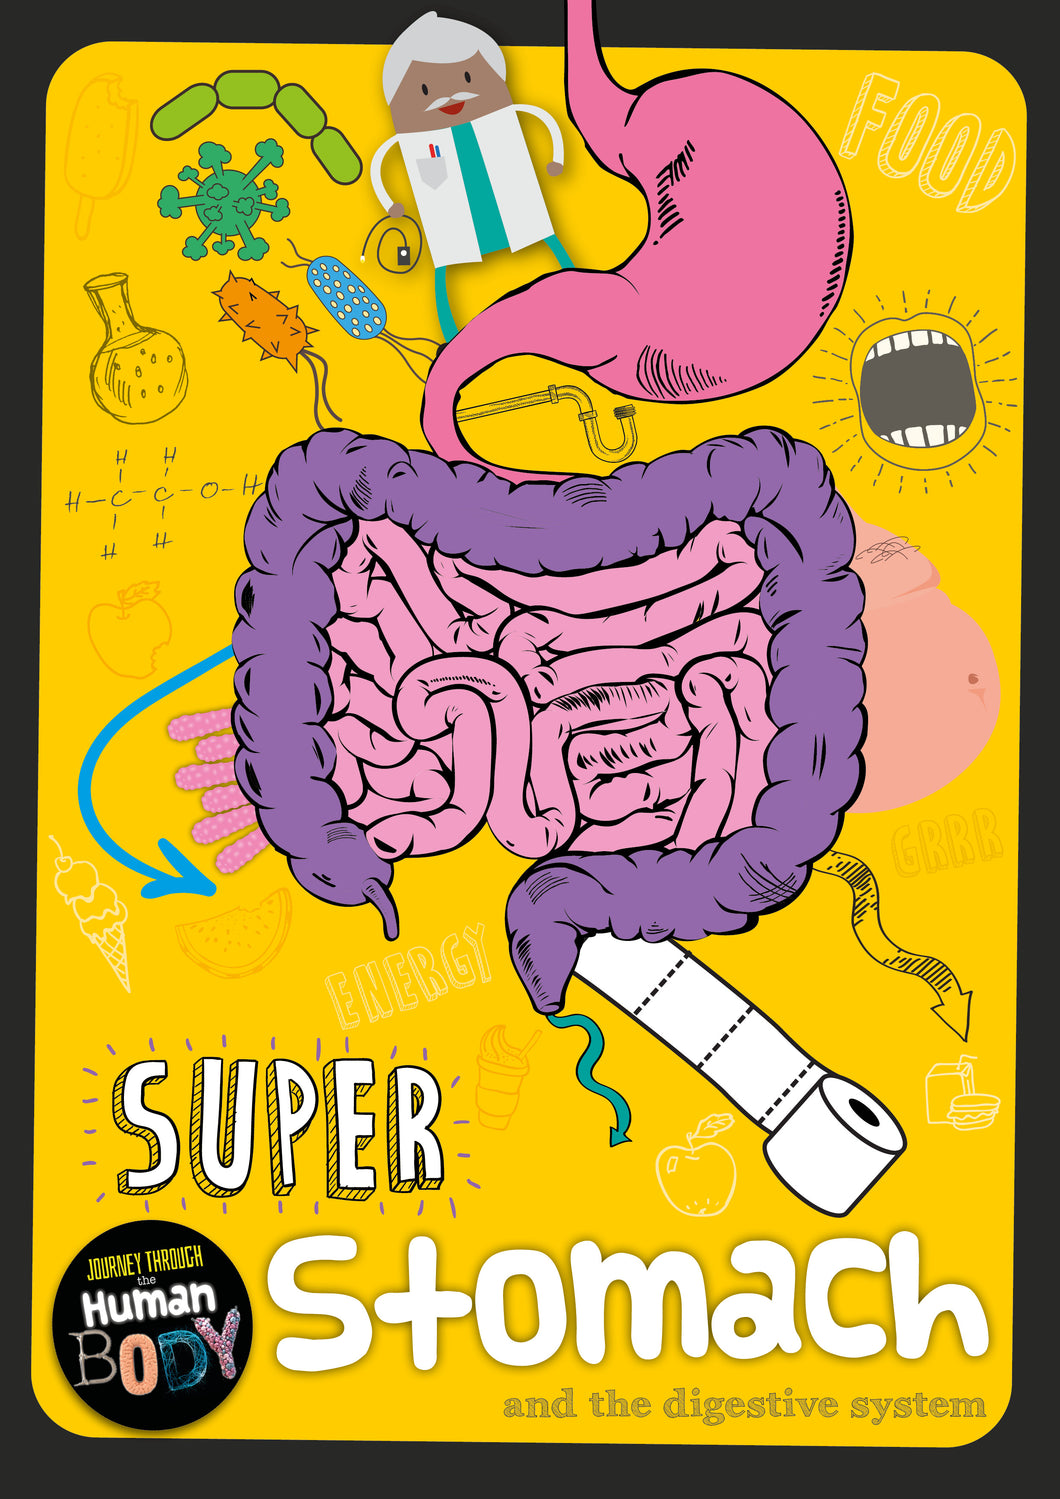 Journey Through the Human Body: Super Stomach e-Book